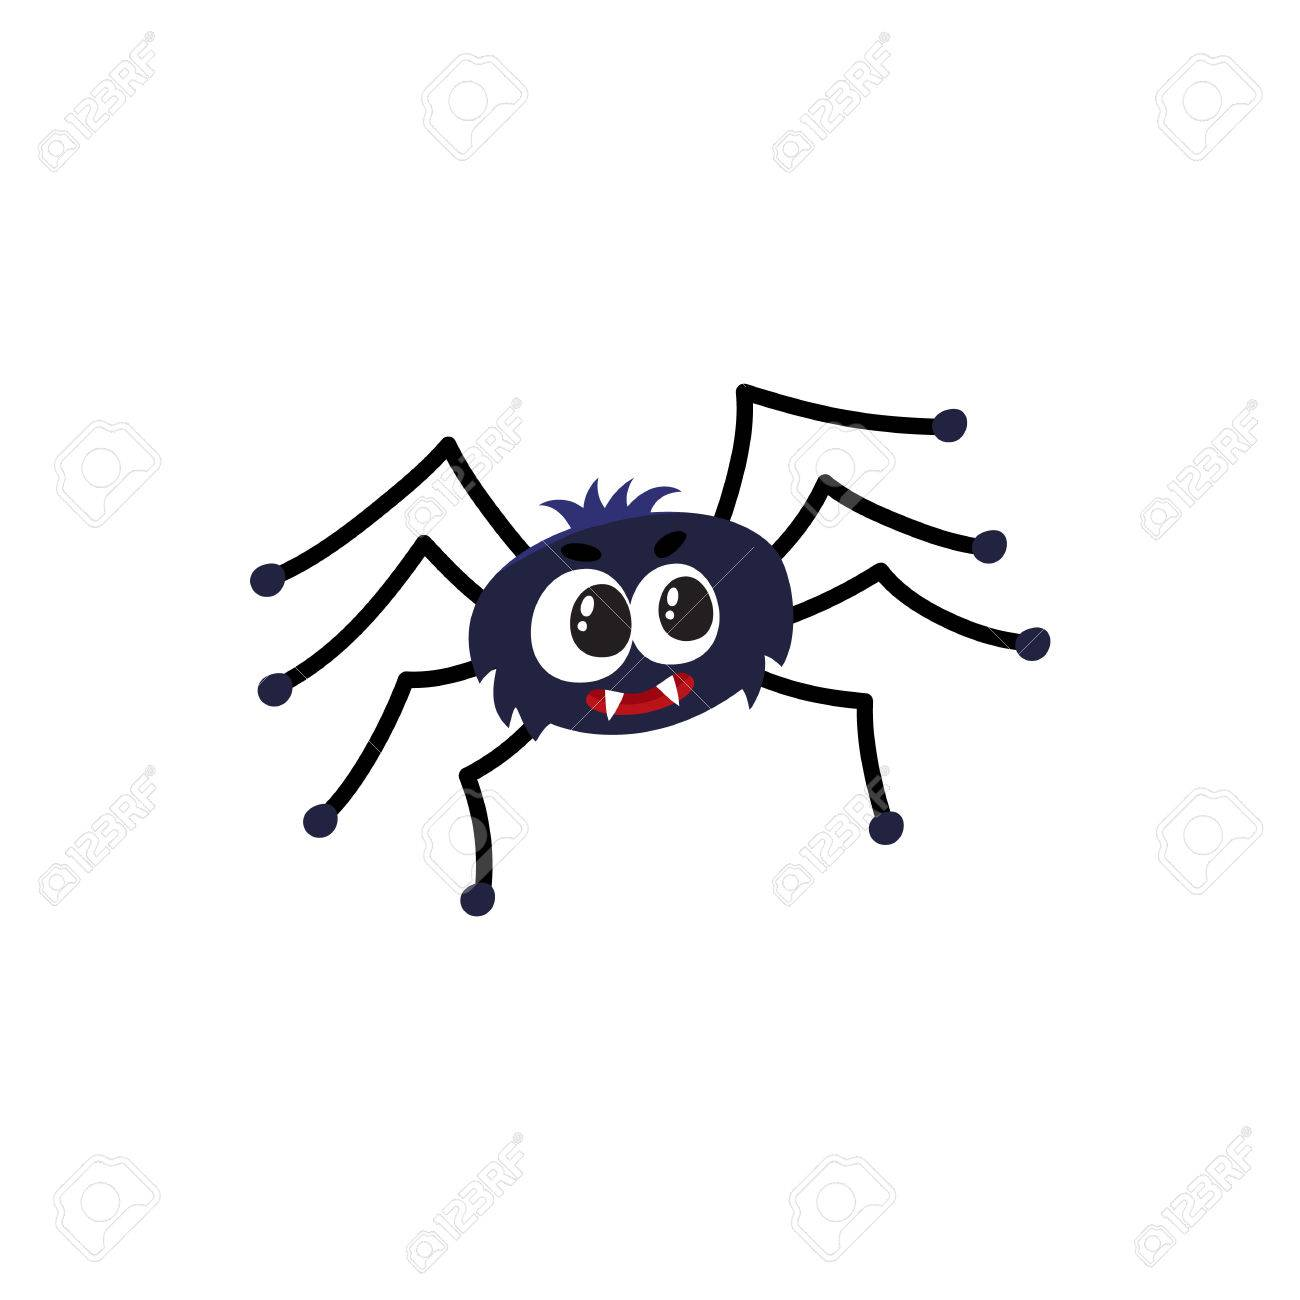 Cute and funny black spider traditional halloween symbol cartoon cute and funny black spider traditional halloween symbol cartoon vector illustration isolated on white biocorpaavc Choice Image